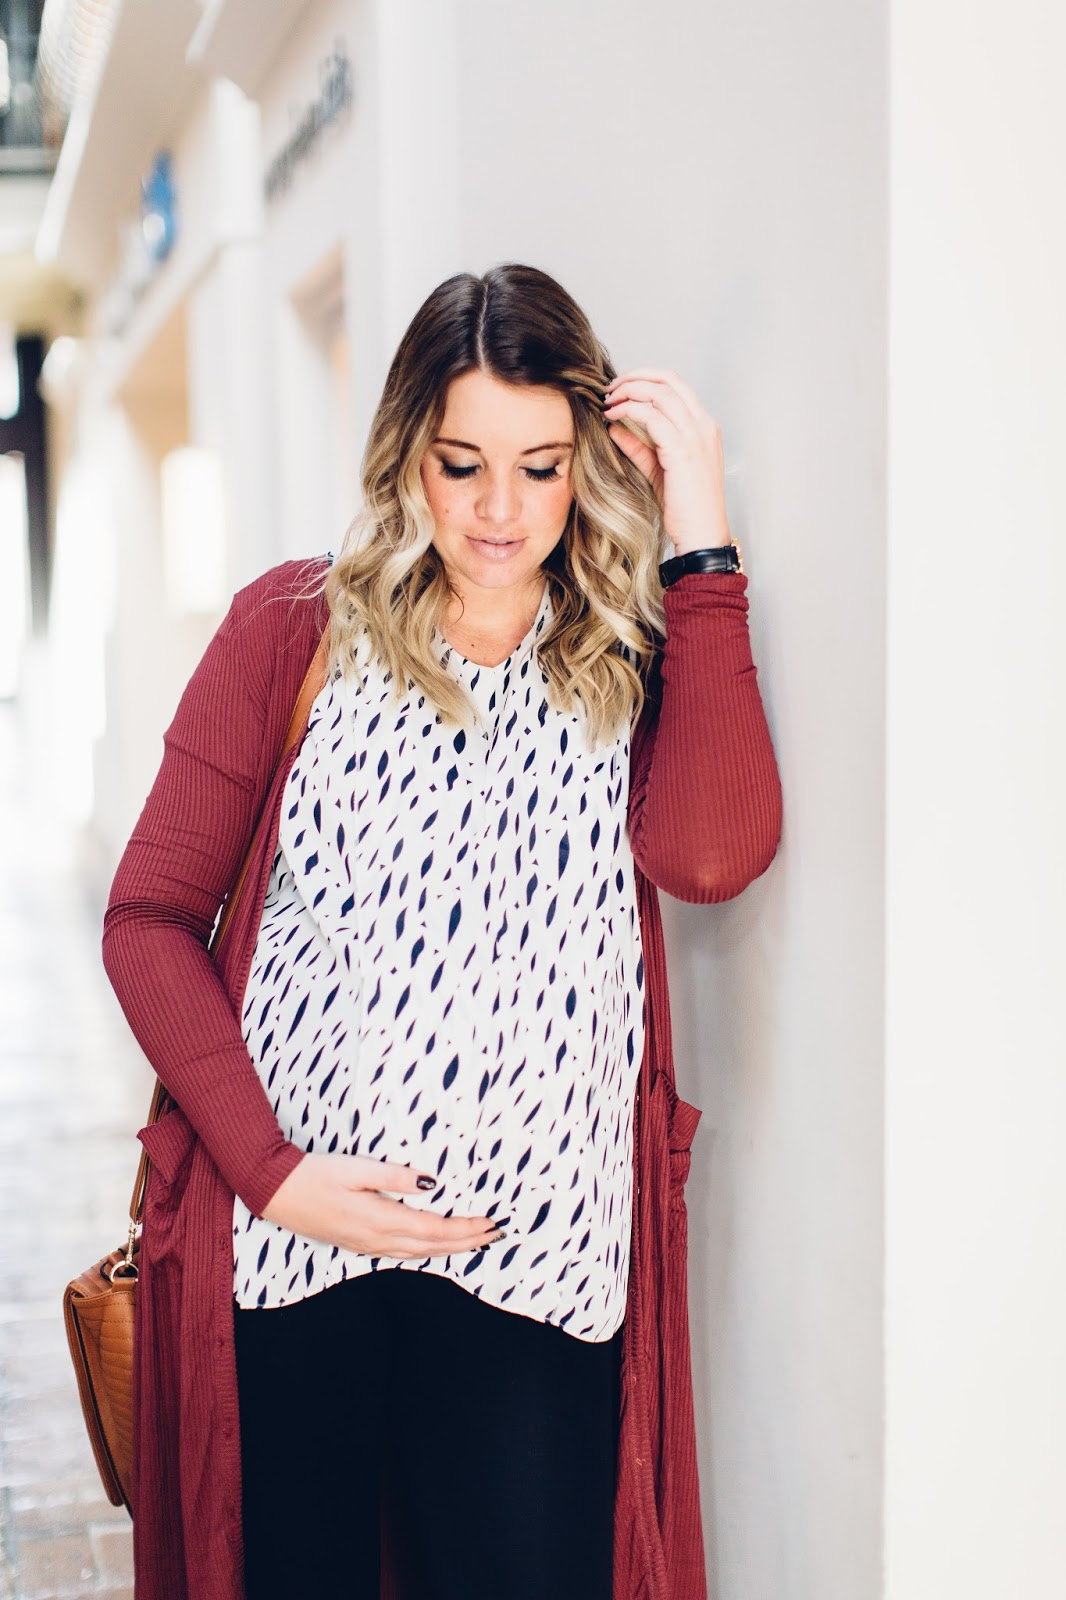 Loyal Hana, Nursing Shirt, Nursing Top, Modest Fashion Blogger